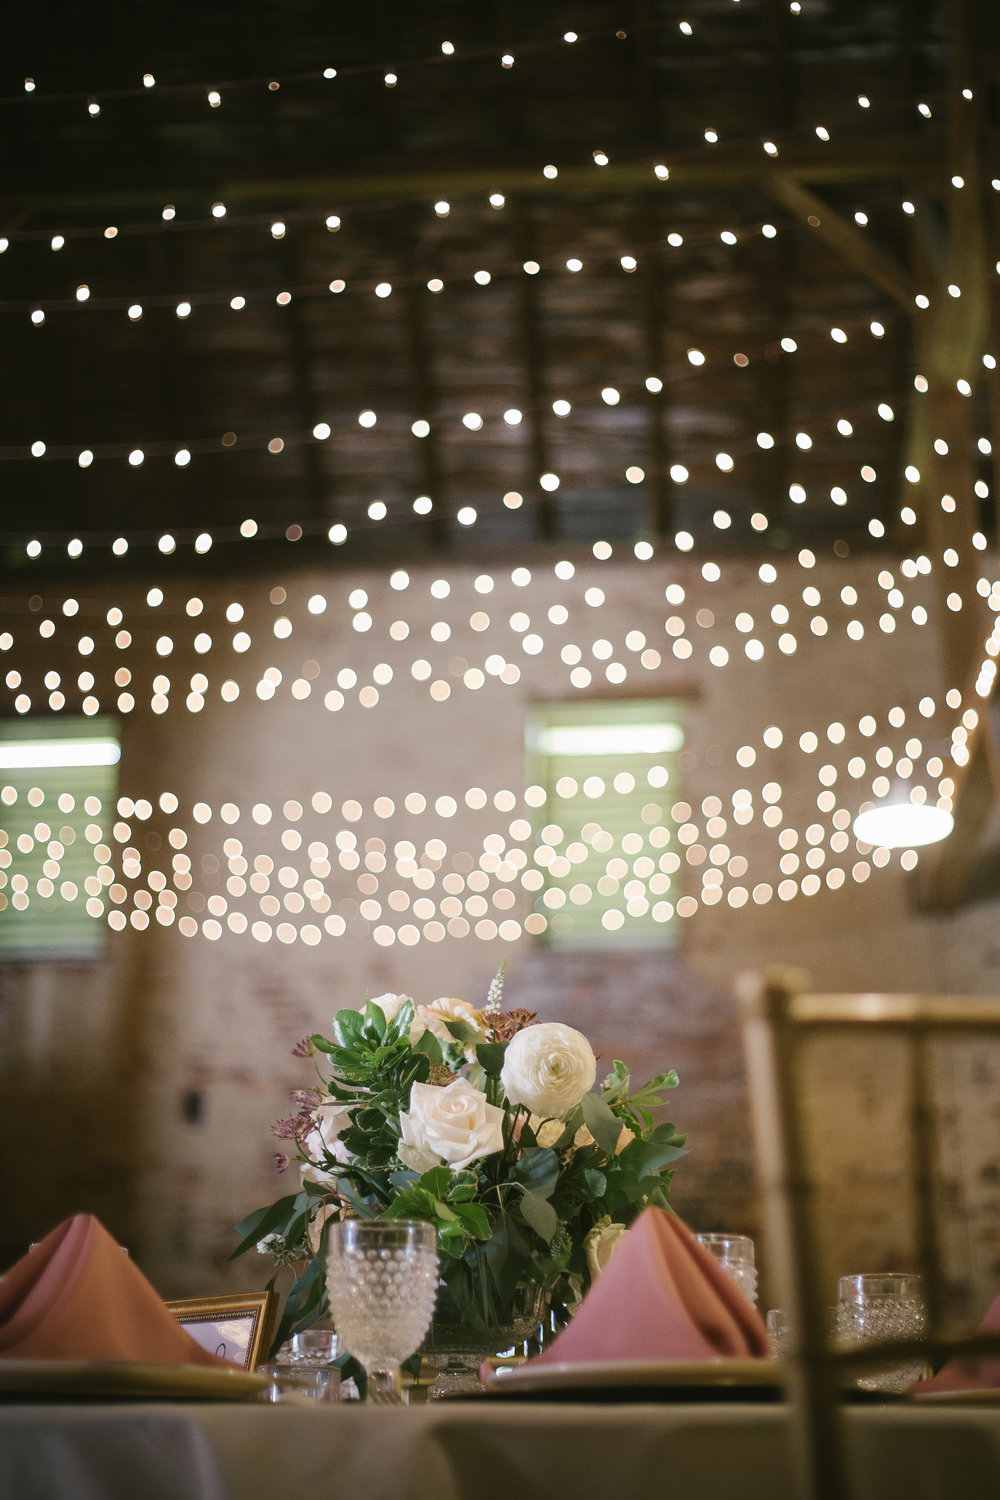 Wedding centerpiece and wedding lighting for rustic wedding reception decor in Pittsburgh, PA planned by Exhale Events. Find more wedding inspiration at exhale-events.com!